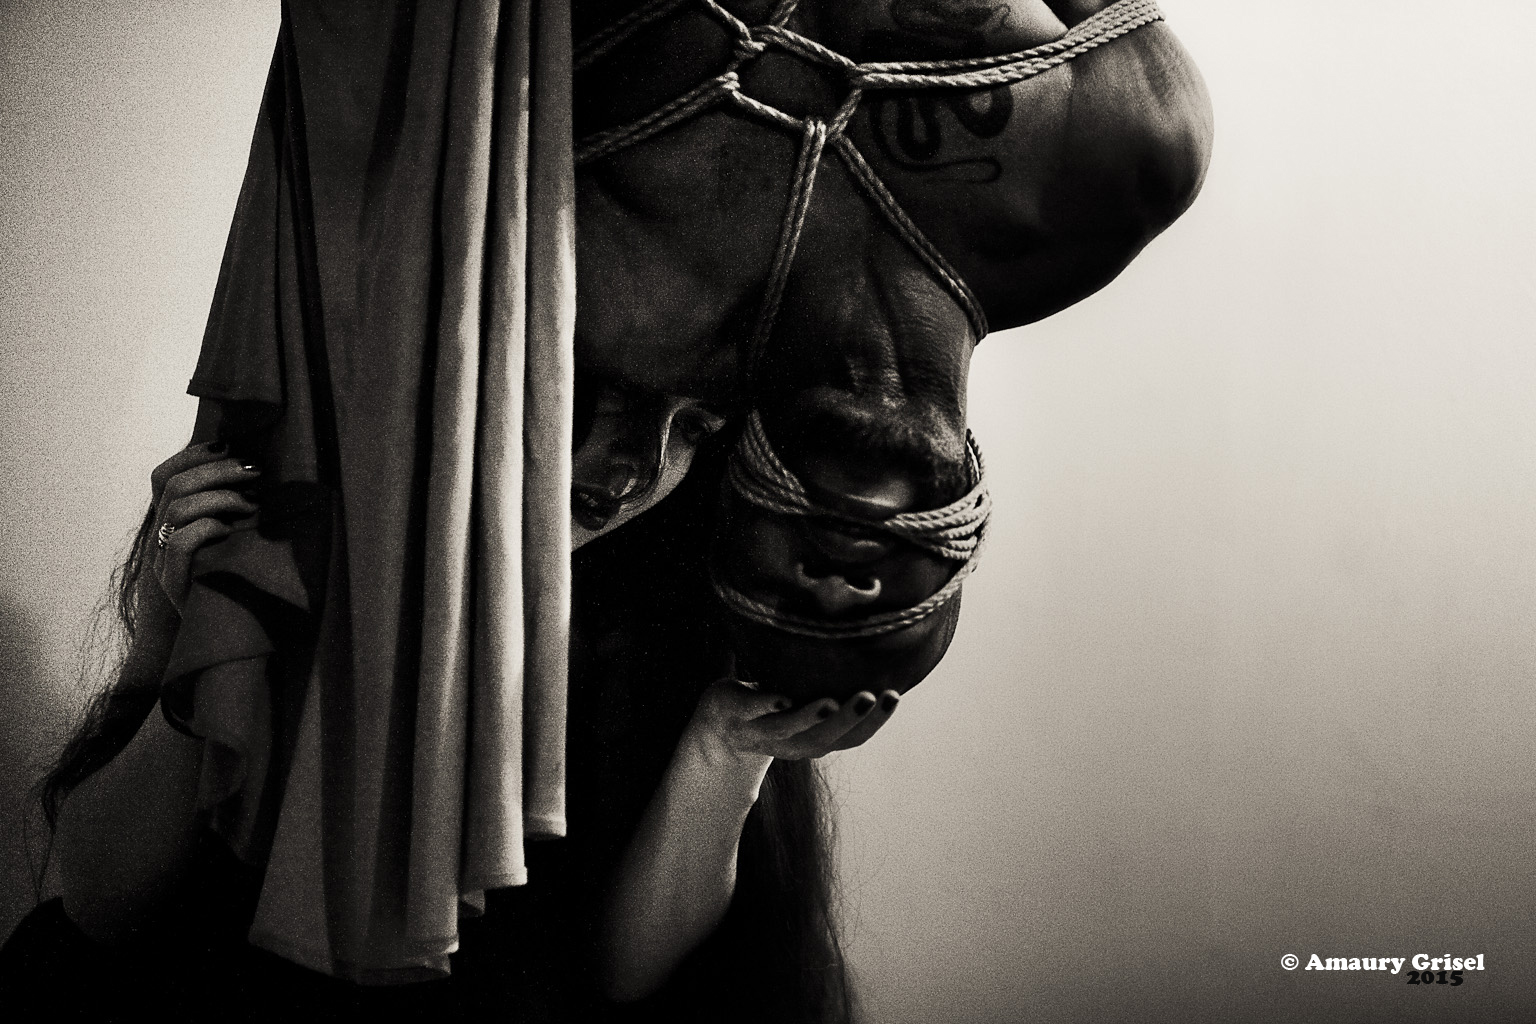 Shibari performance by Gestalta and Bishop